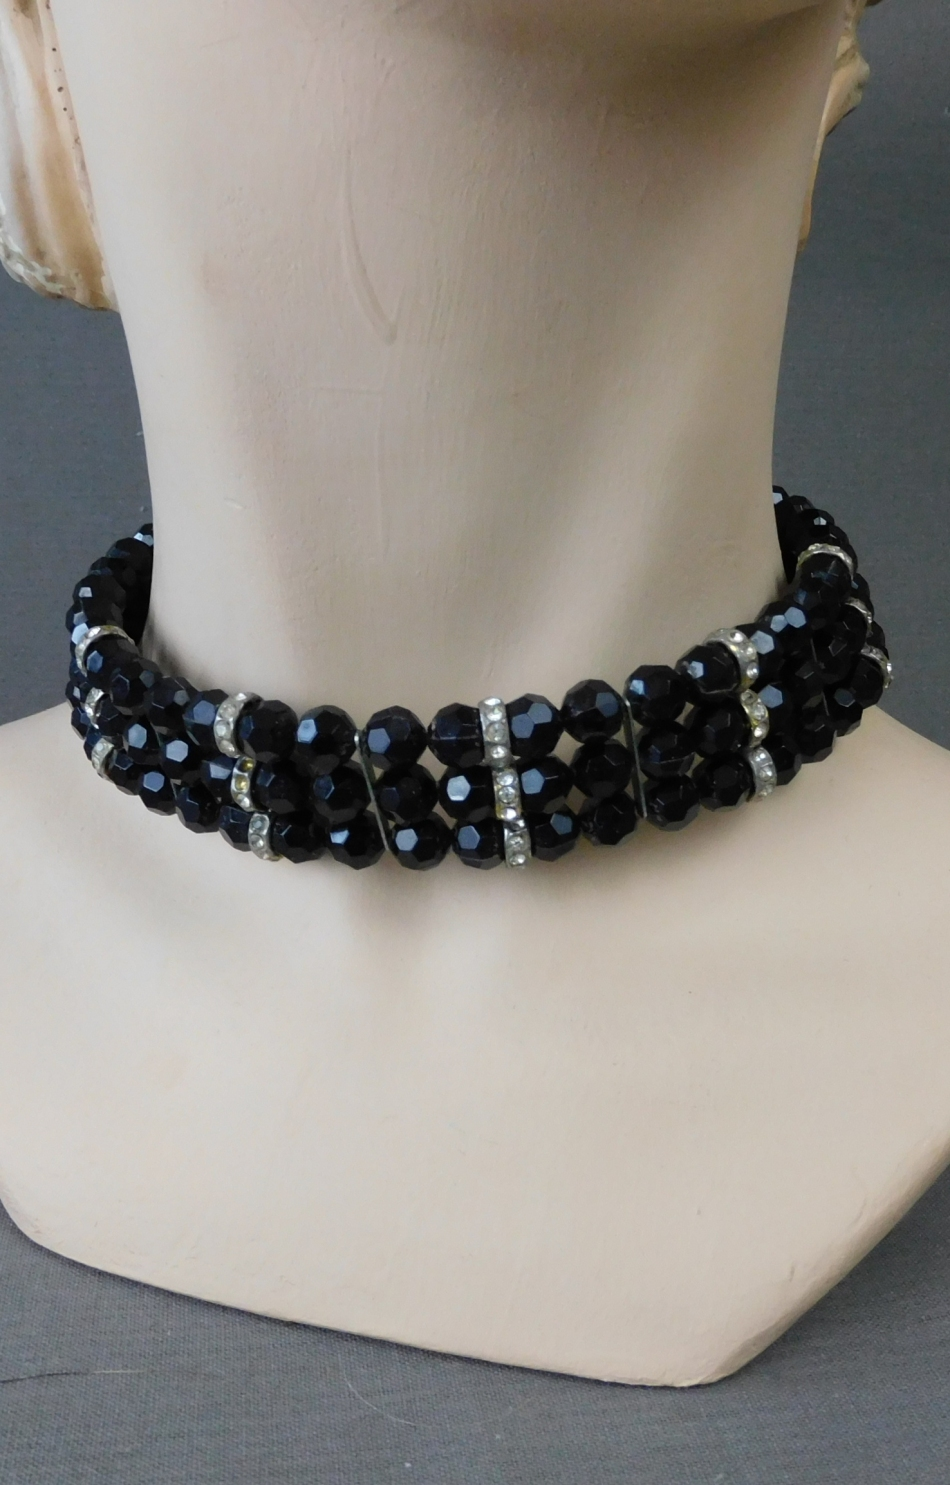 Vintage Black Beads Choker Necklace, 3 wire rows with Rhinestones 1950s 1960s